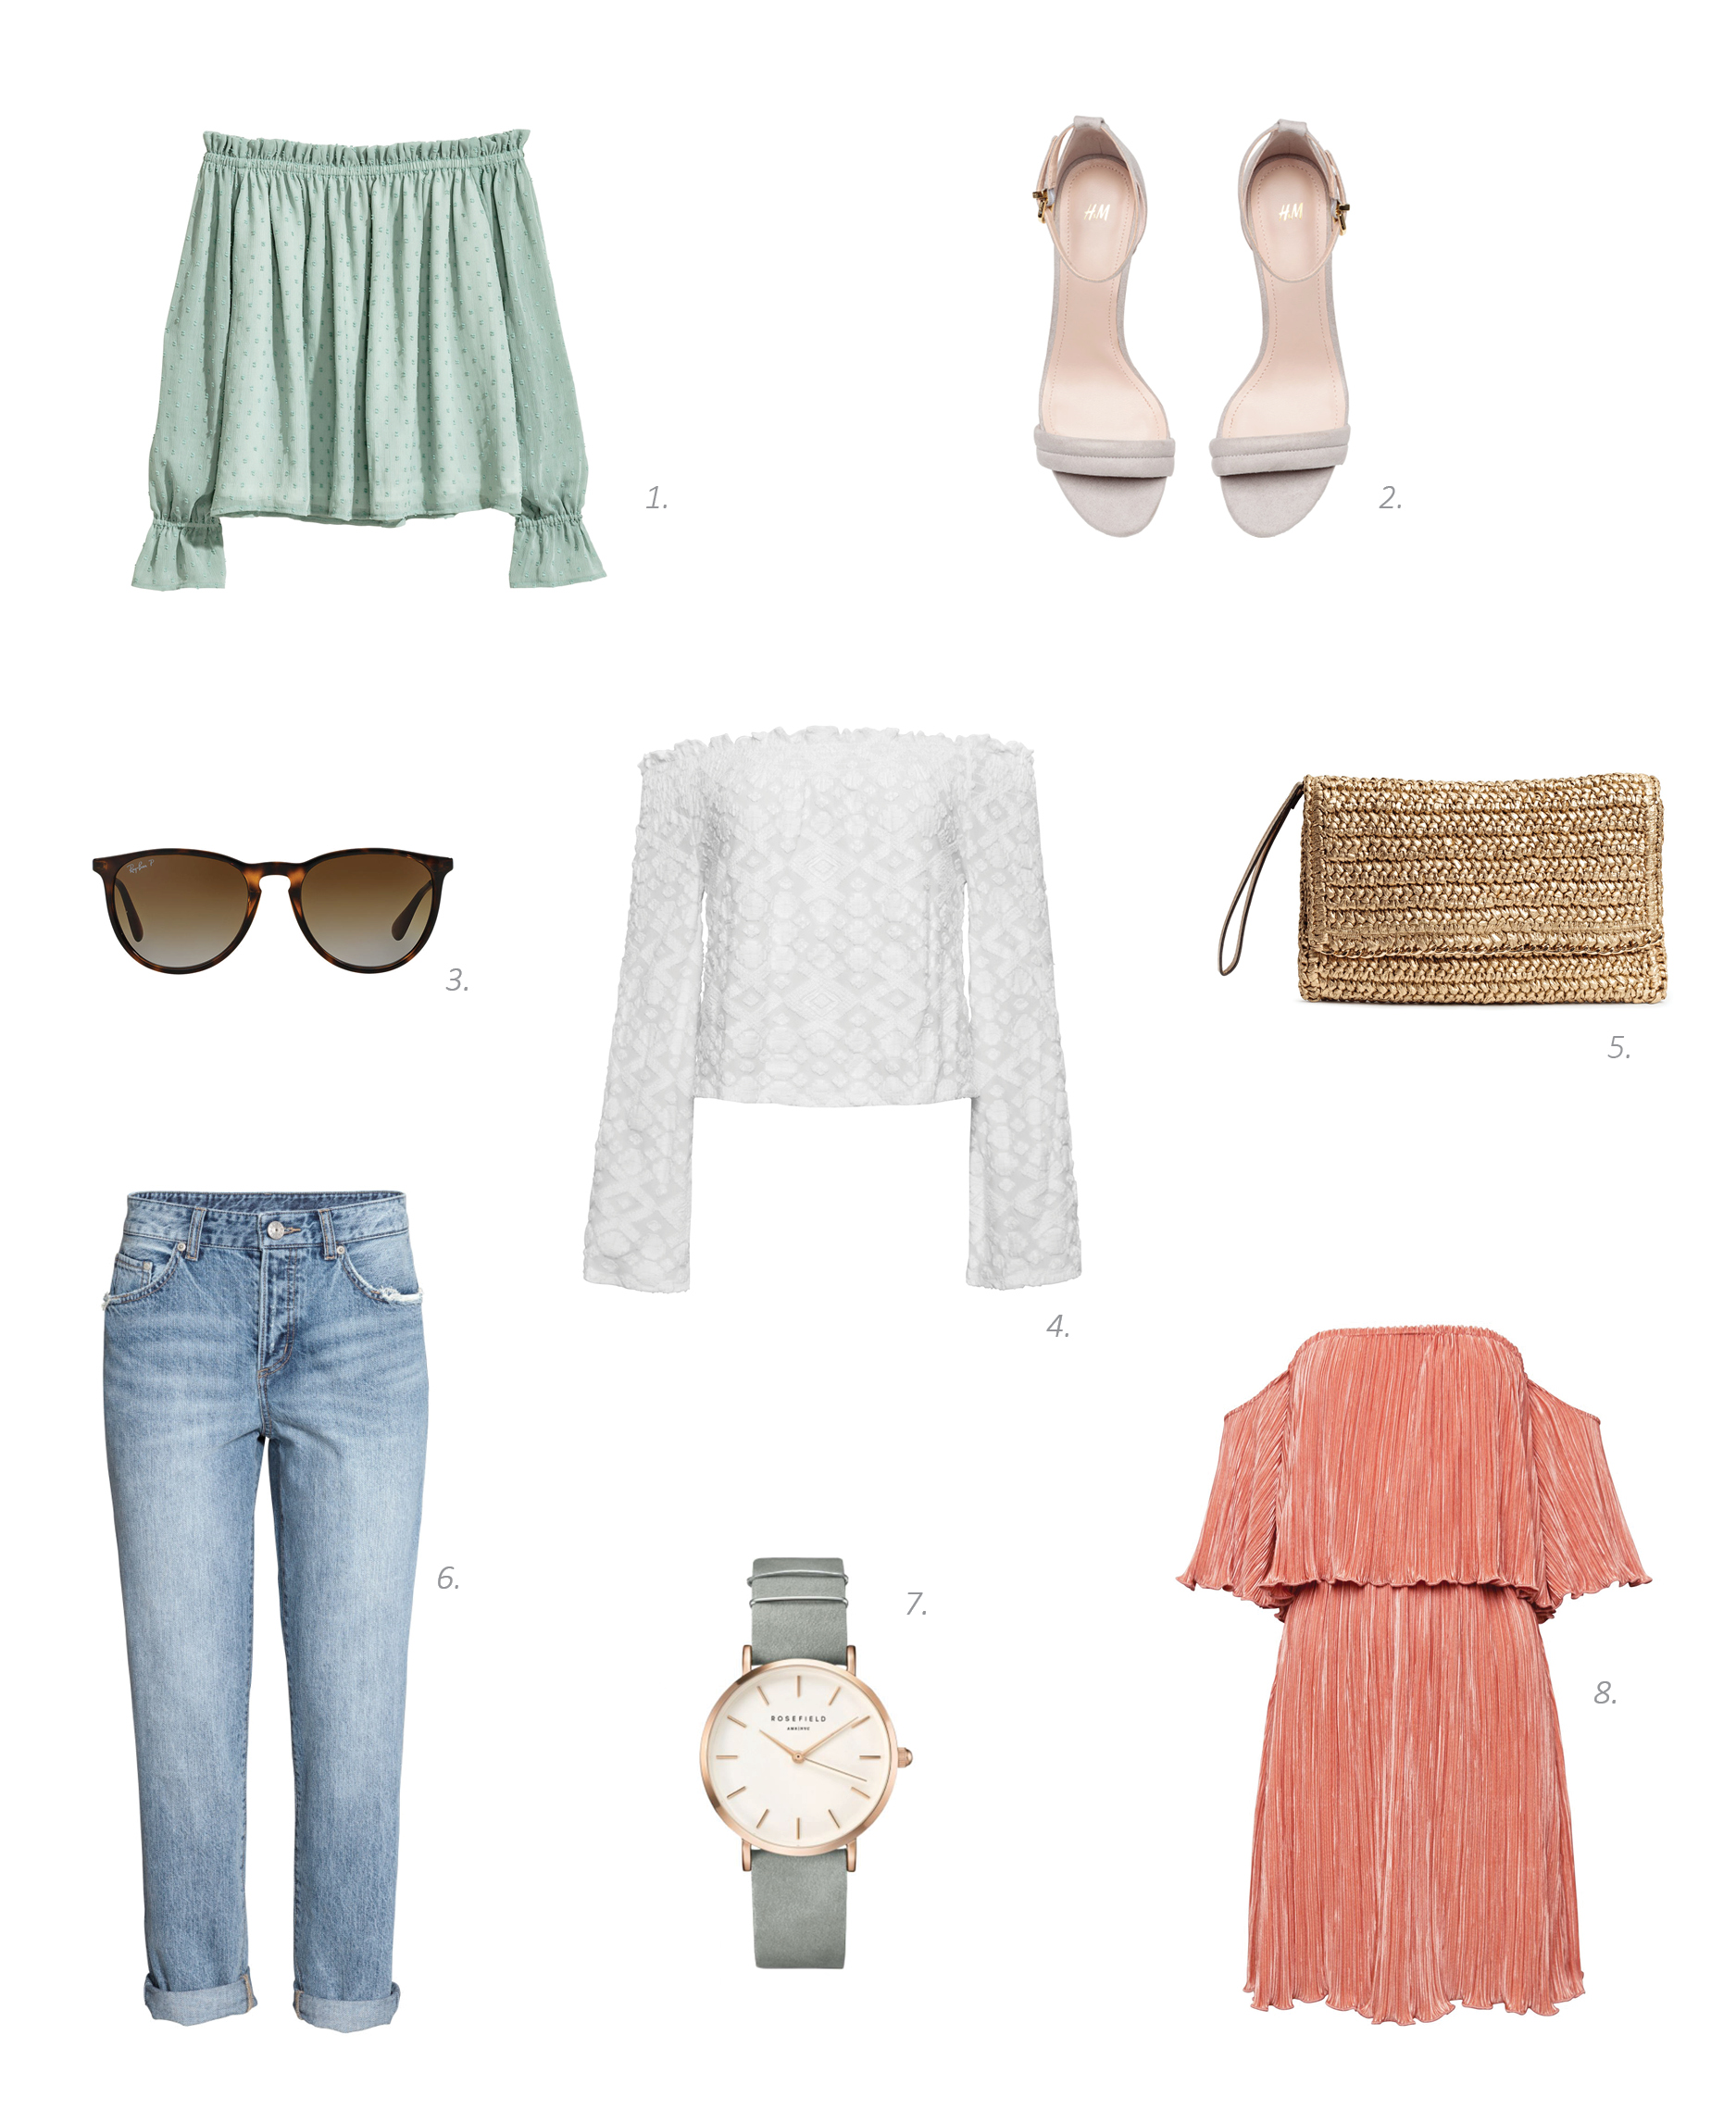 4115f6f443e H&M Archives – RG Daily